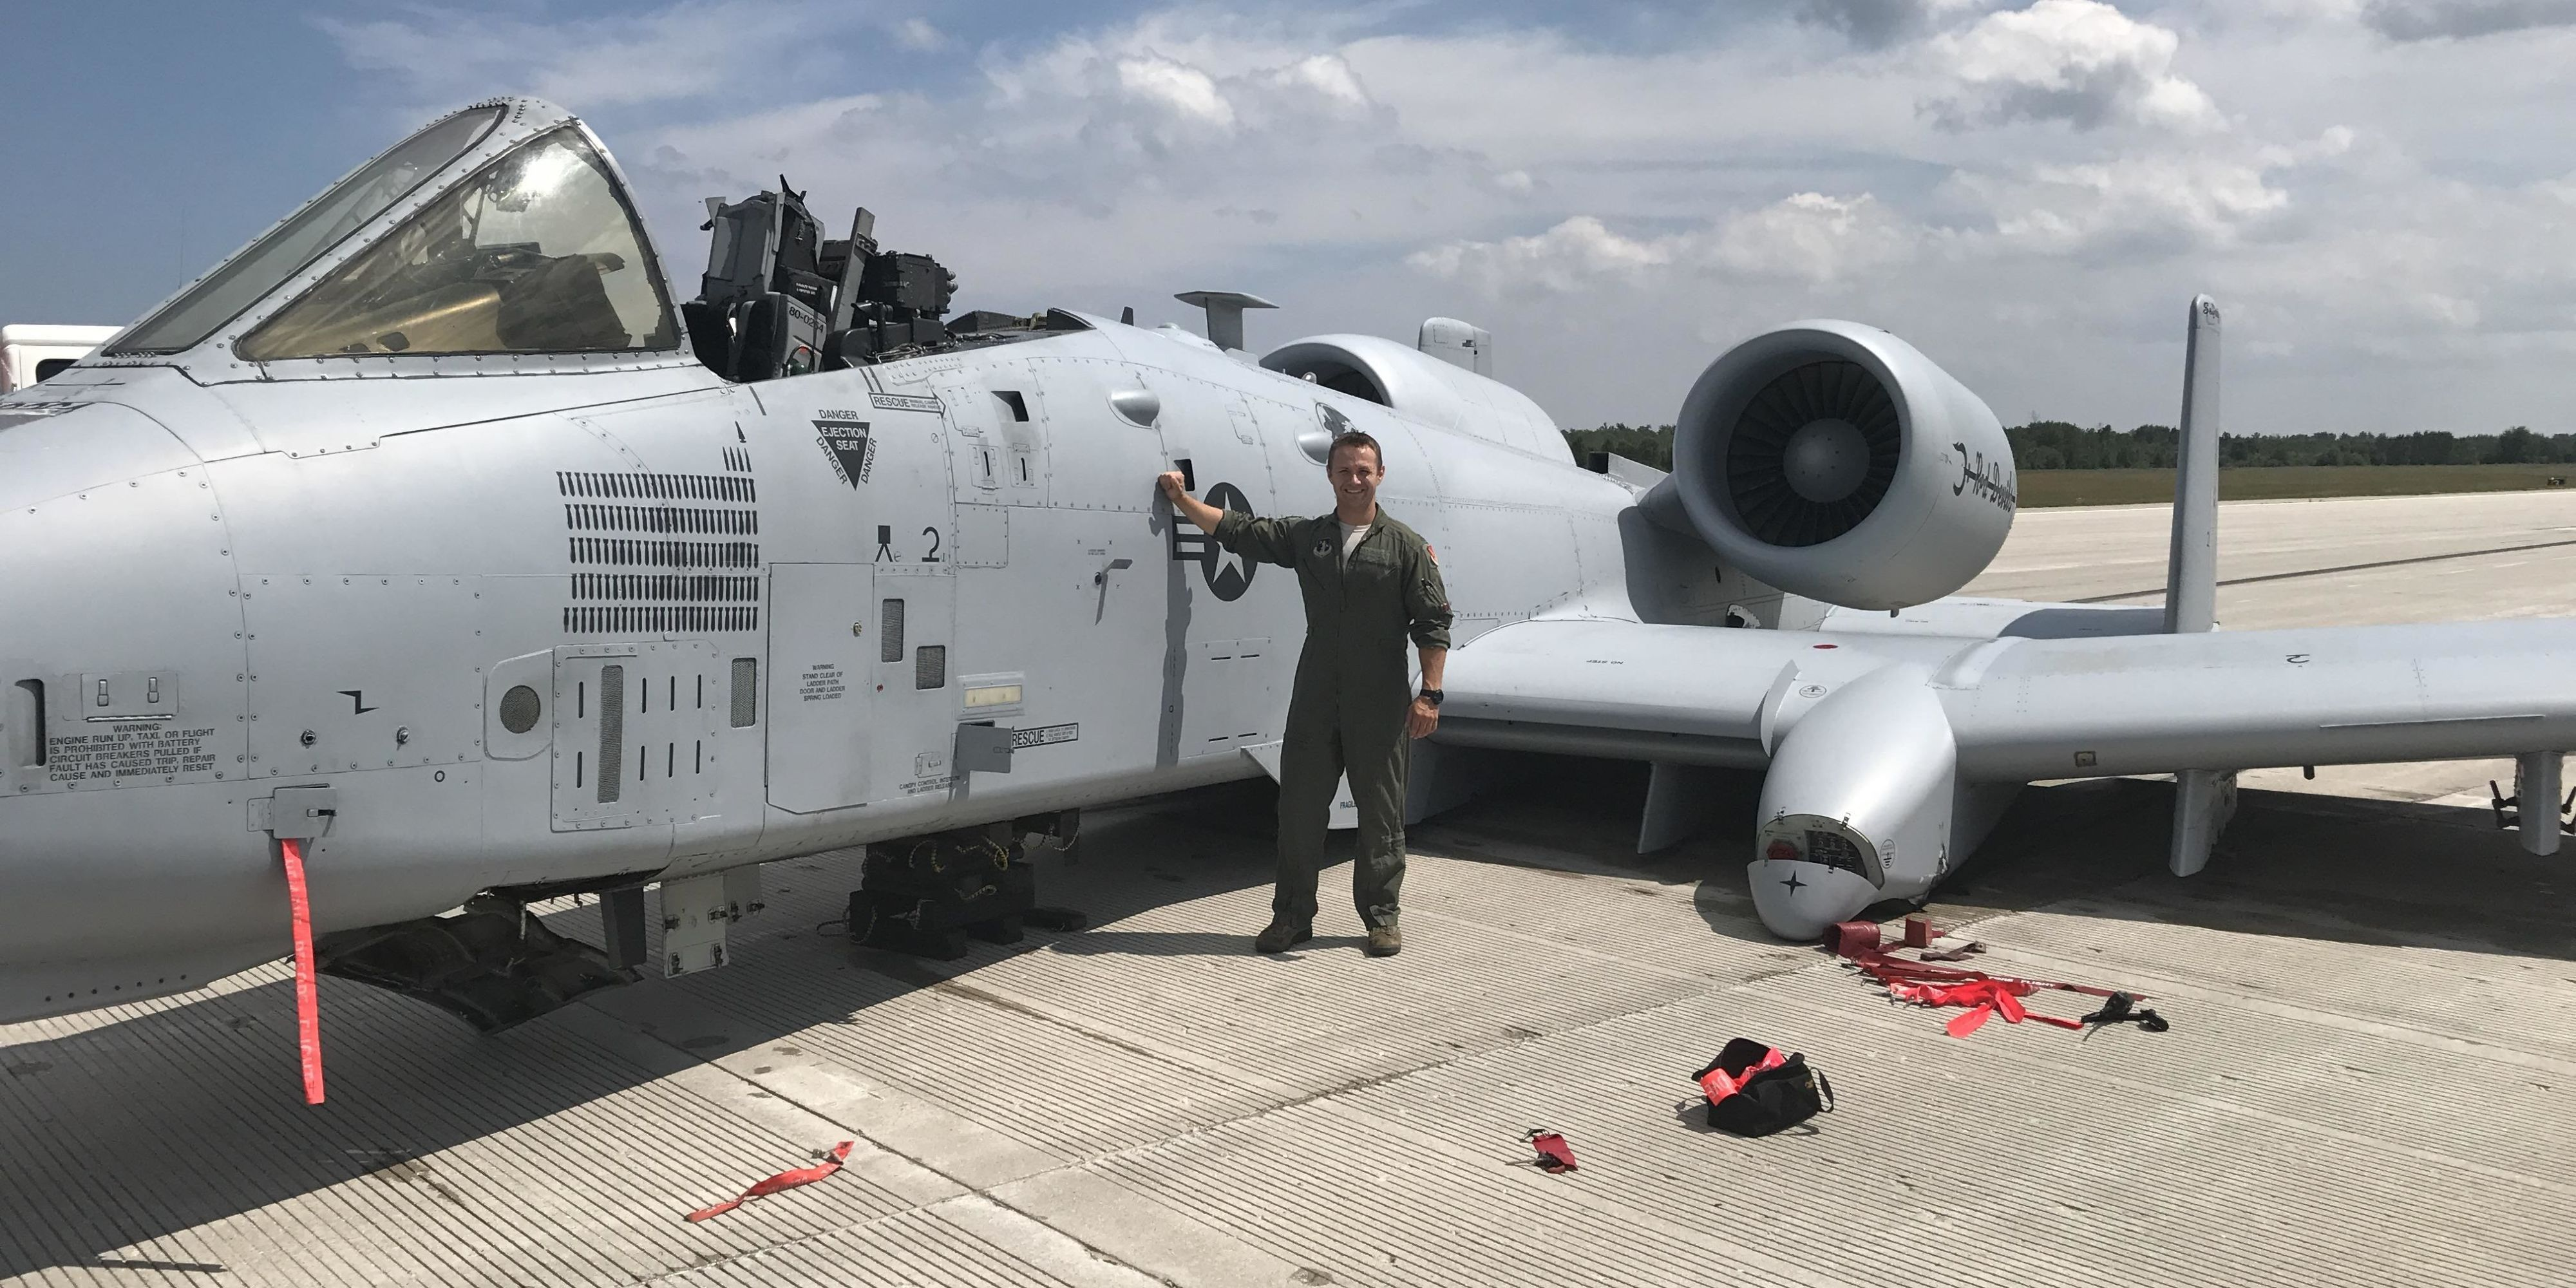 U.S. Airman Forced to Belly-Land A-10 Warthog After Canopy Blows Landing Gear Fails & U.S. Airman Forced to Belly-Land A-10 Warthog After Canopy Blows ...